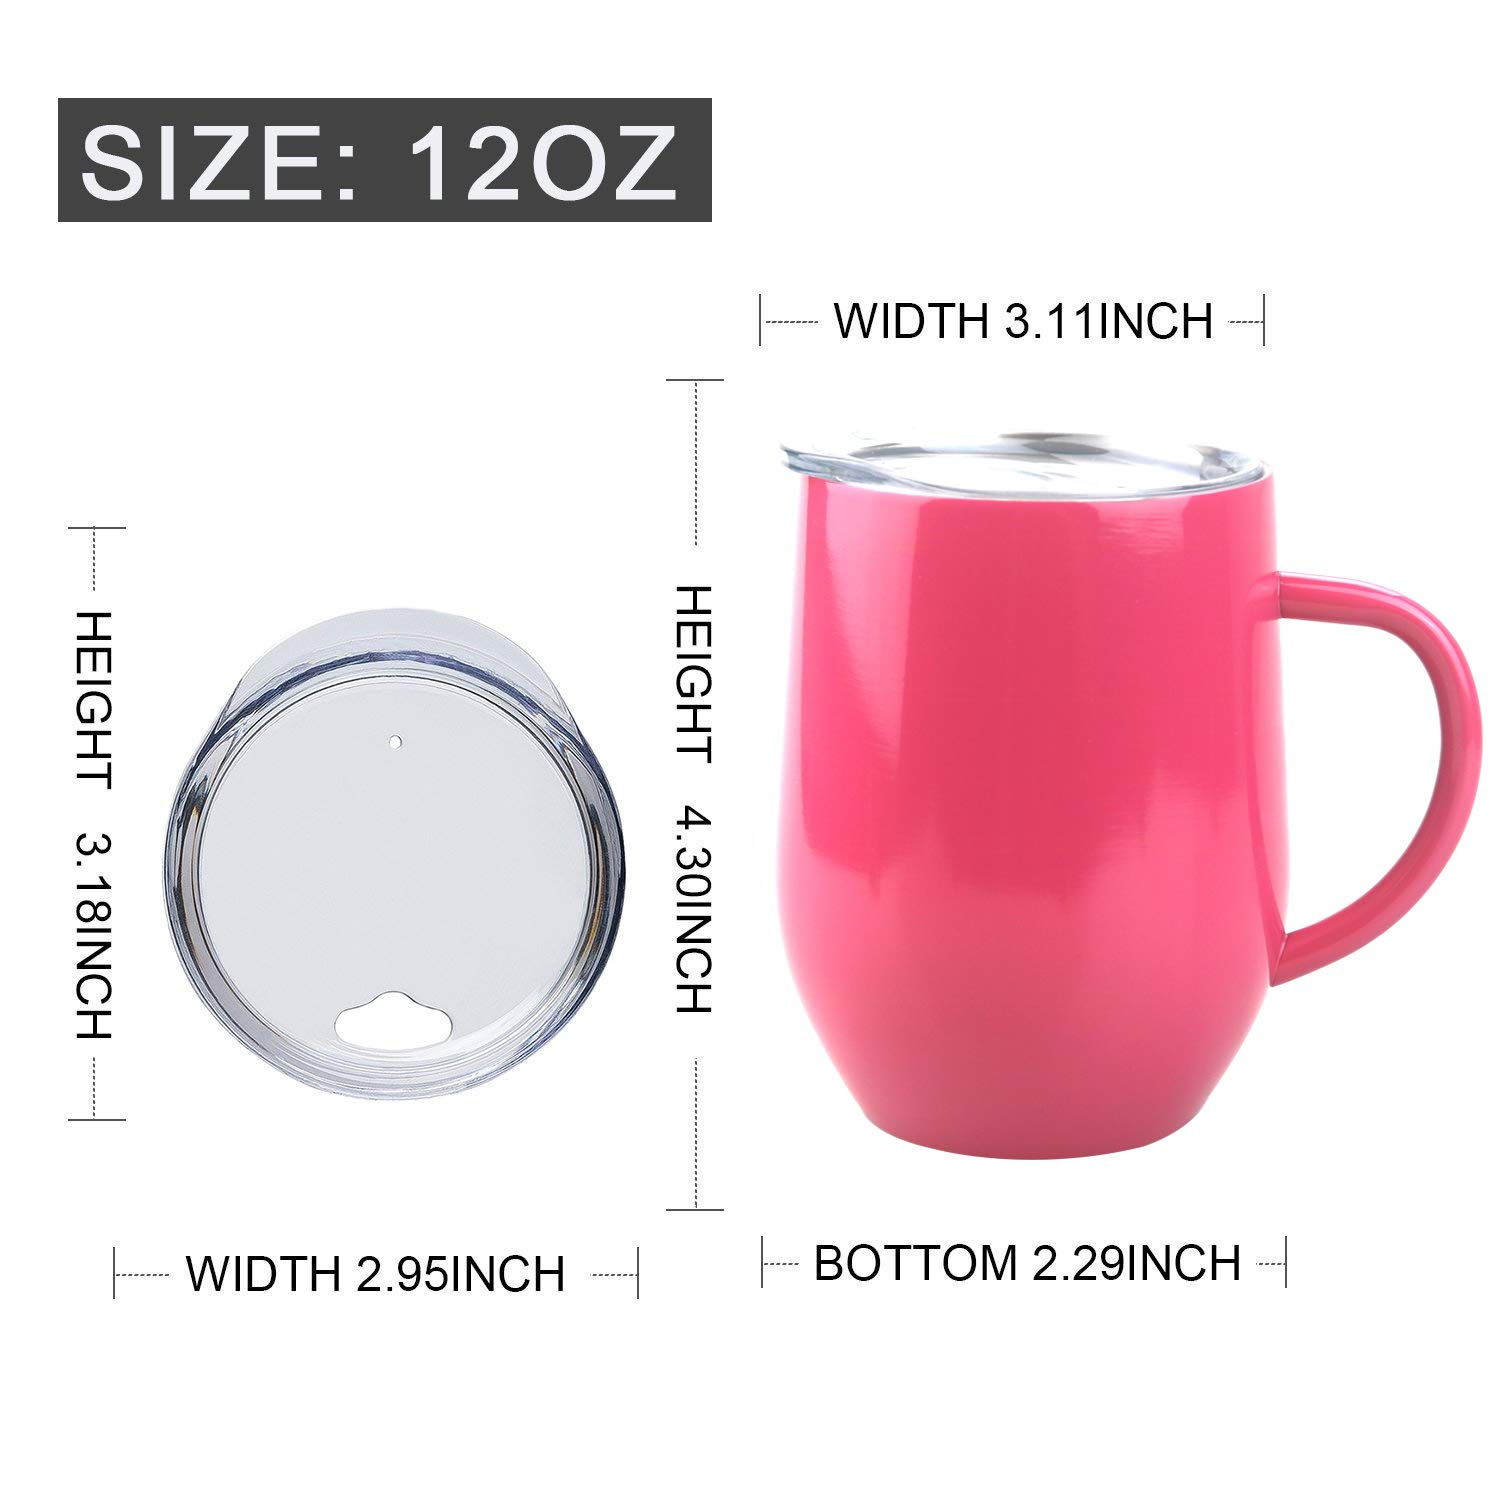 Drinks Lightingsky 12oz Double-insulated Wine Cup Stainless Steel Wine Glasses Travel Tumblers with Lid Great for Champagne 12oz, Rose-2 Pack Cocktails